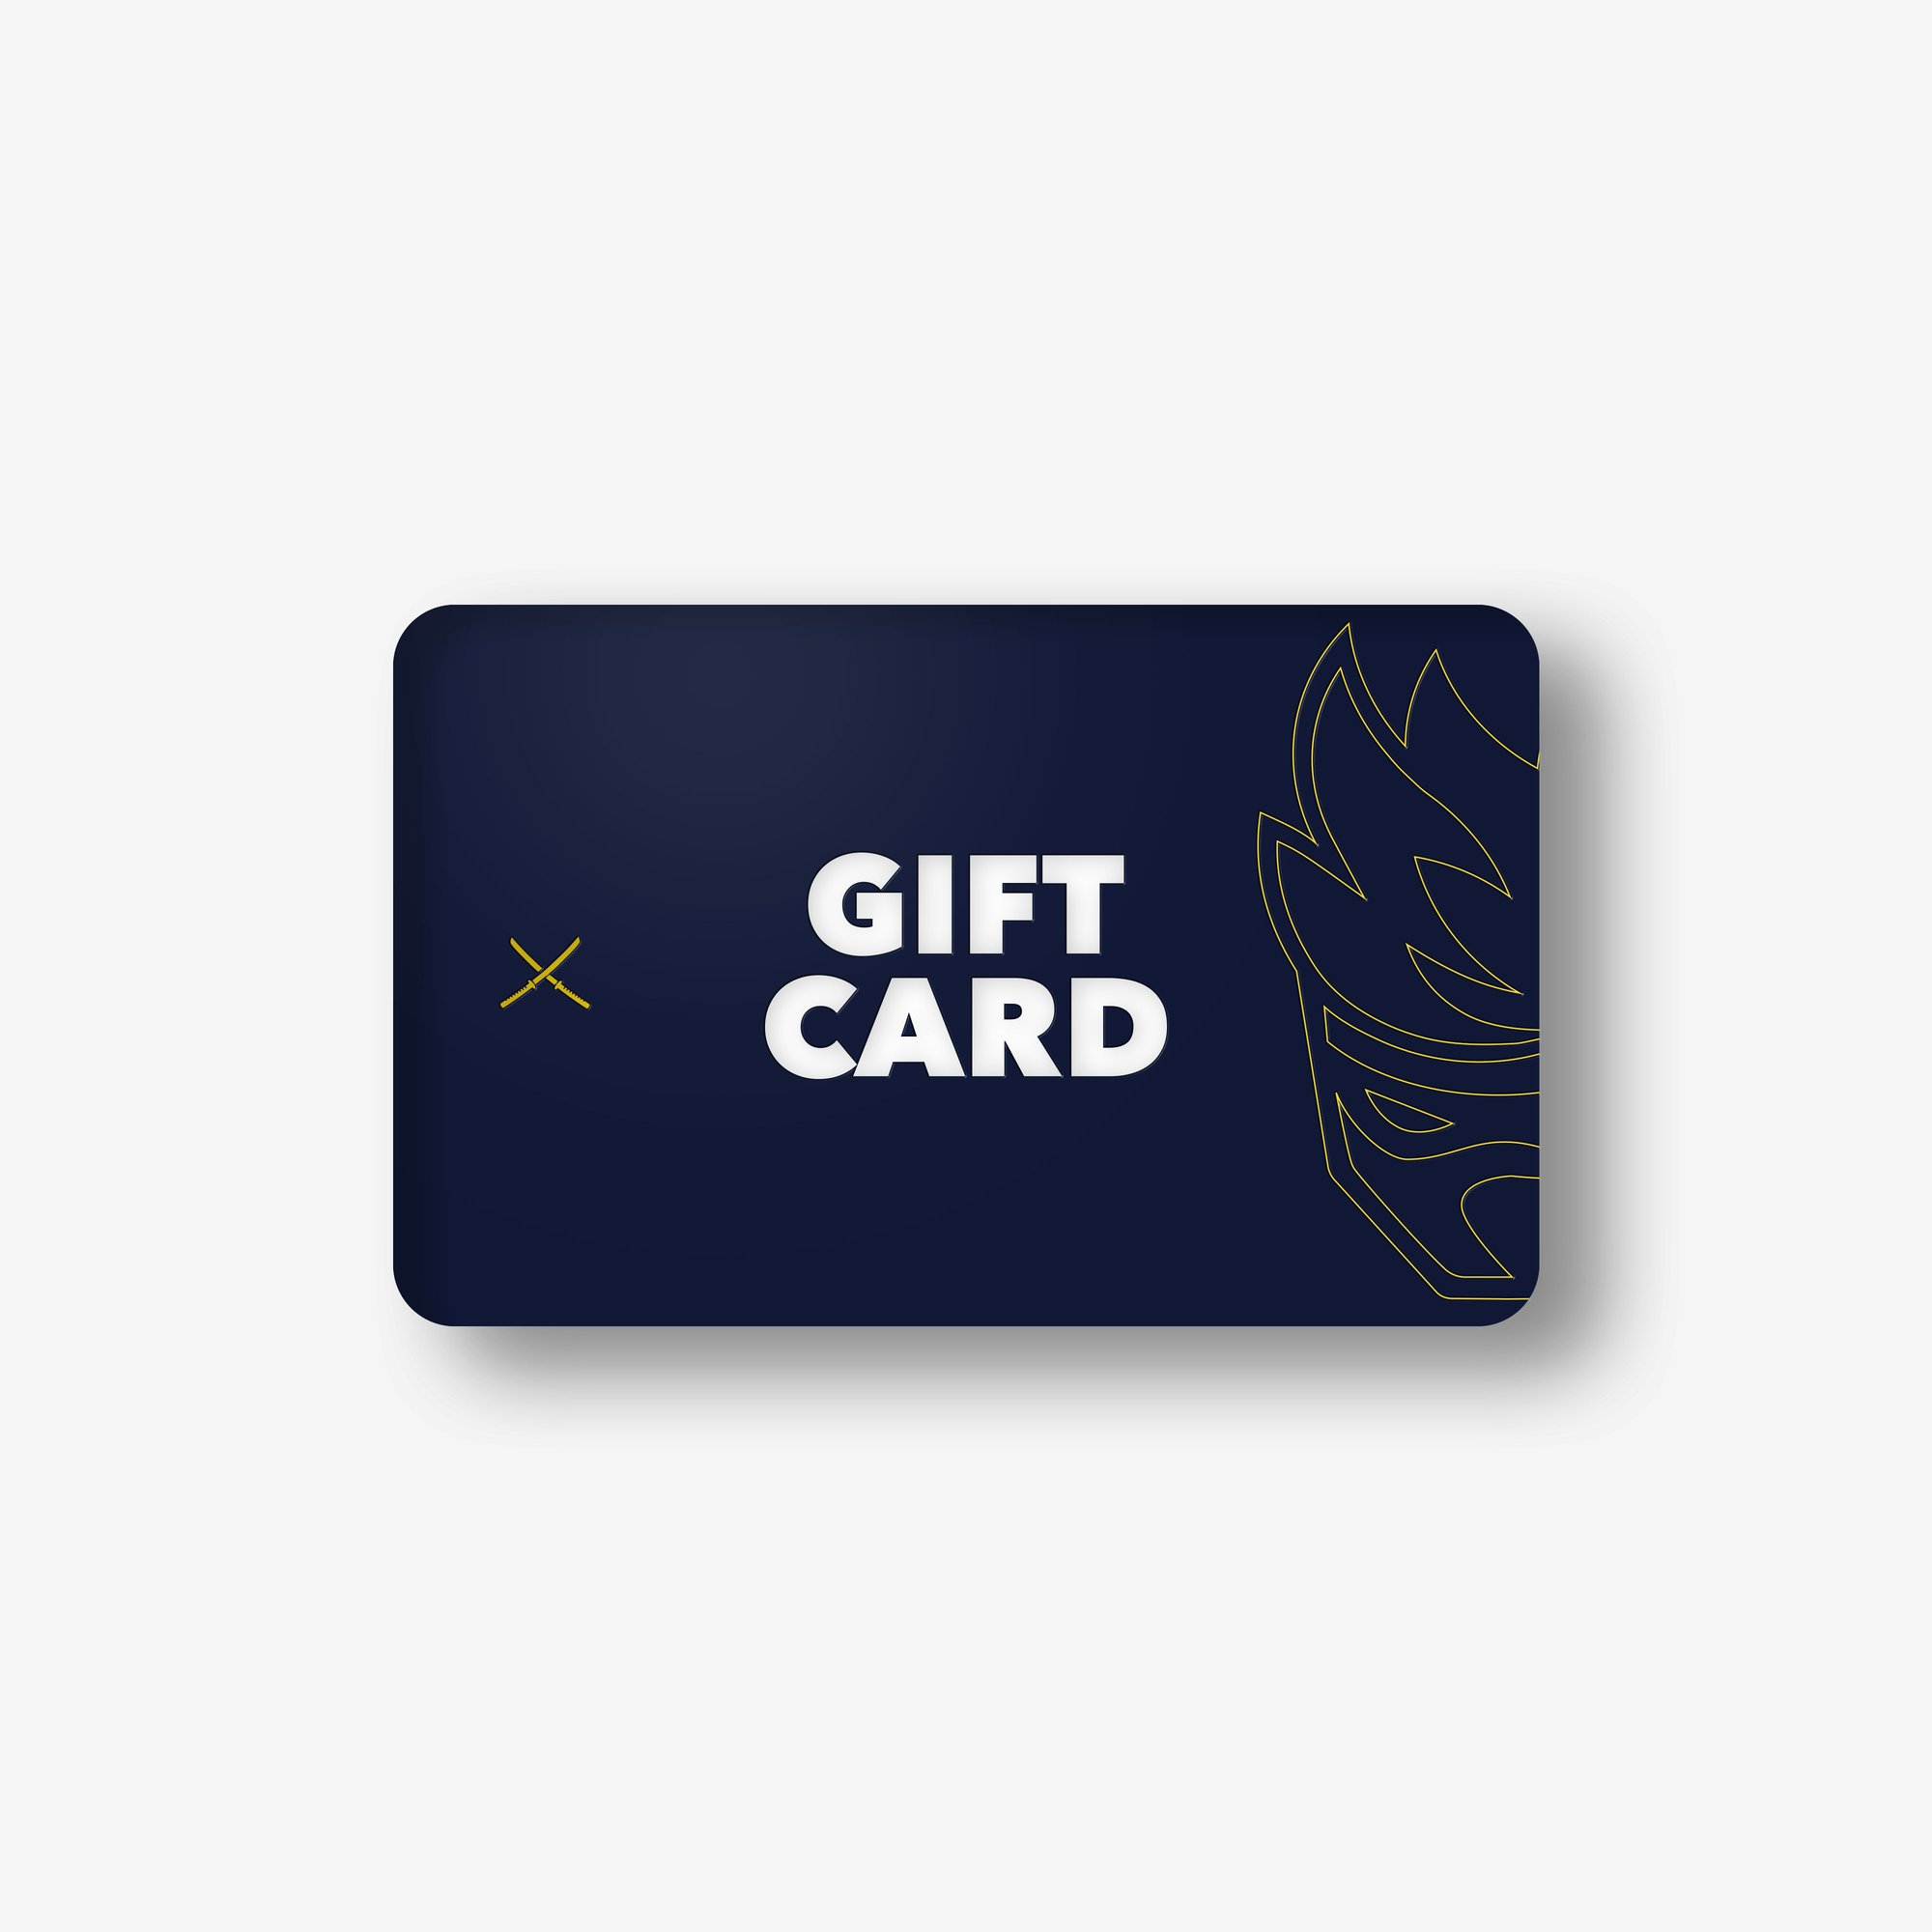 Product Image for Gift Card